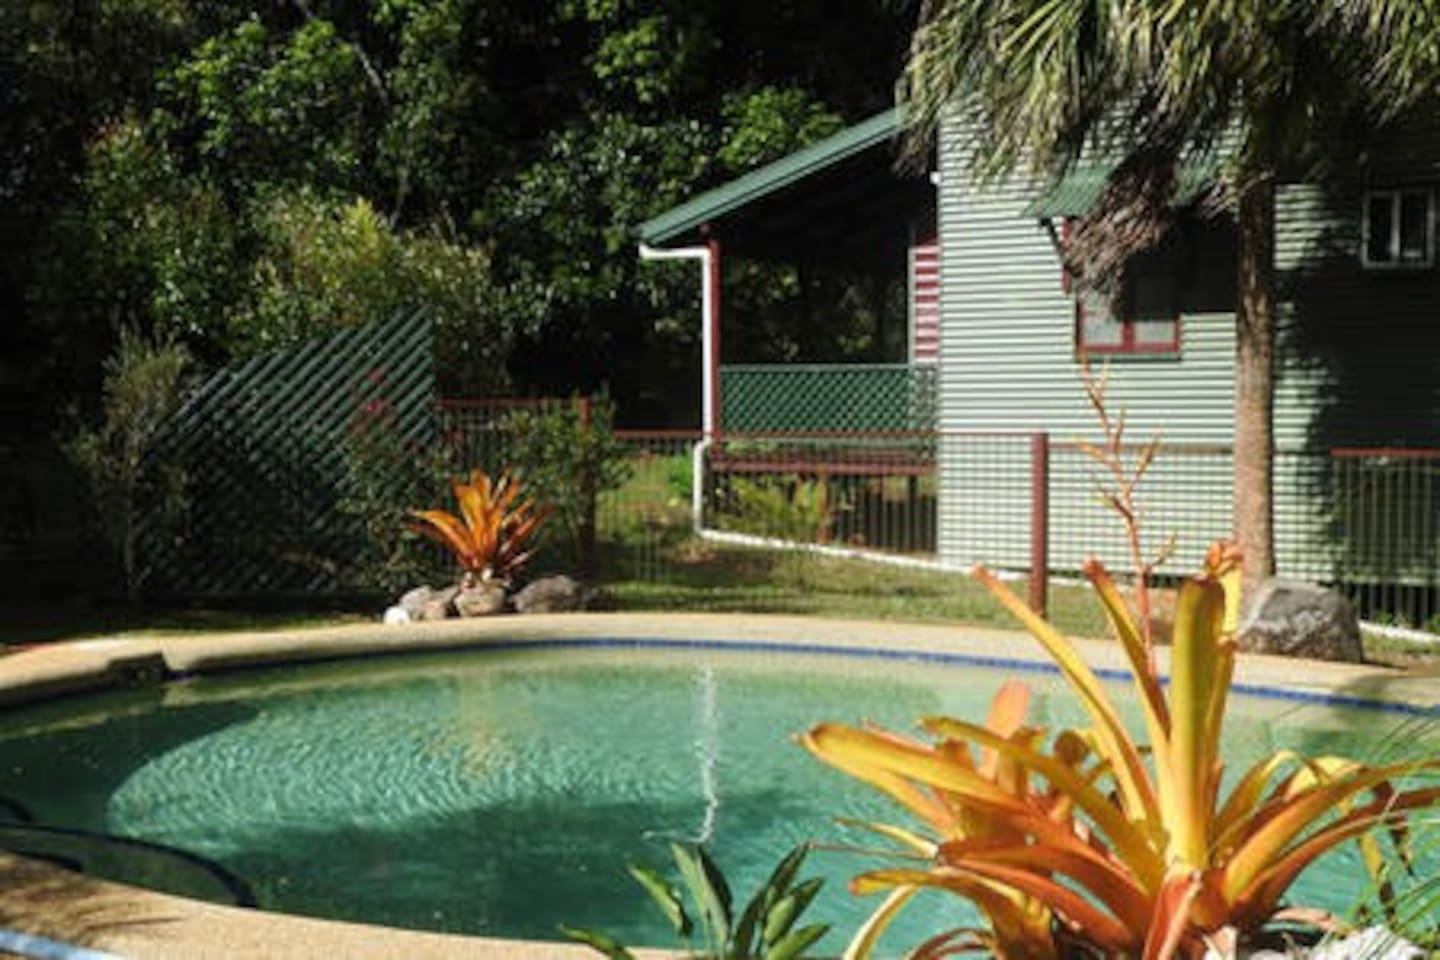 Saltwater swimming pool and the guest house